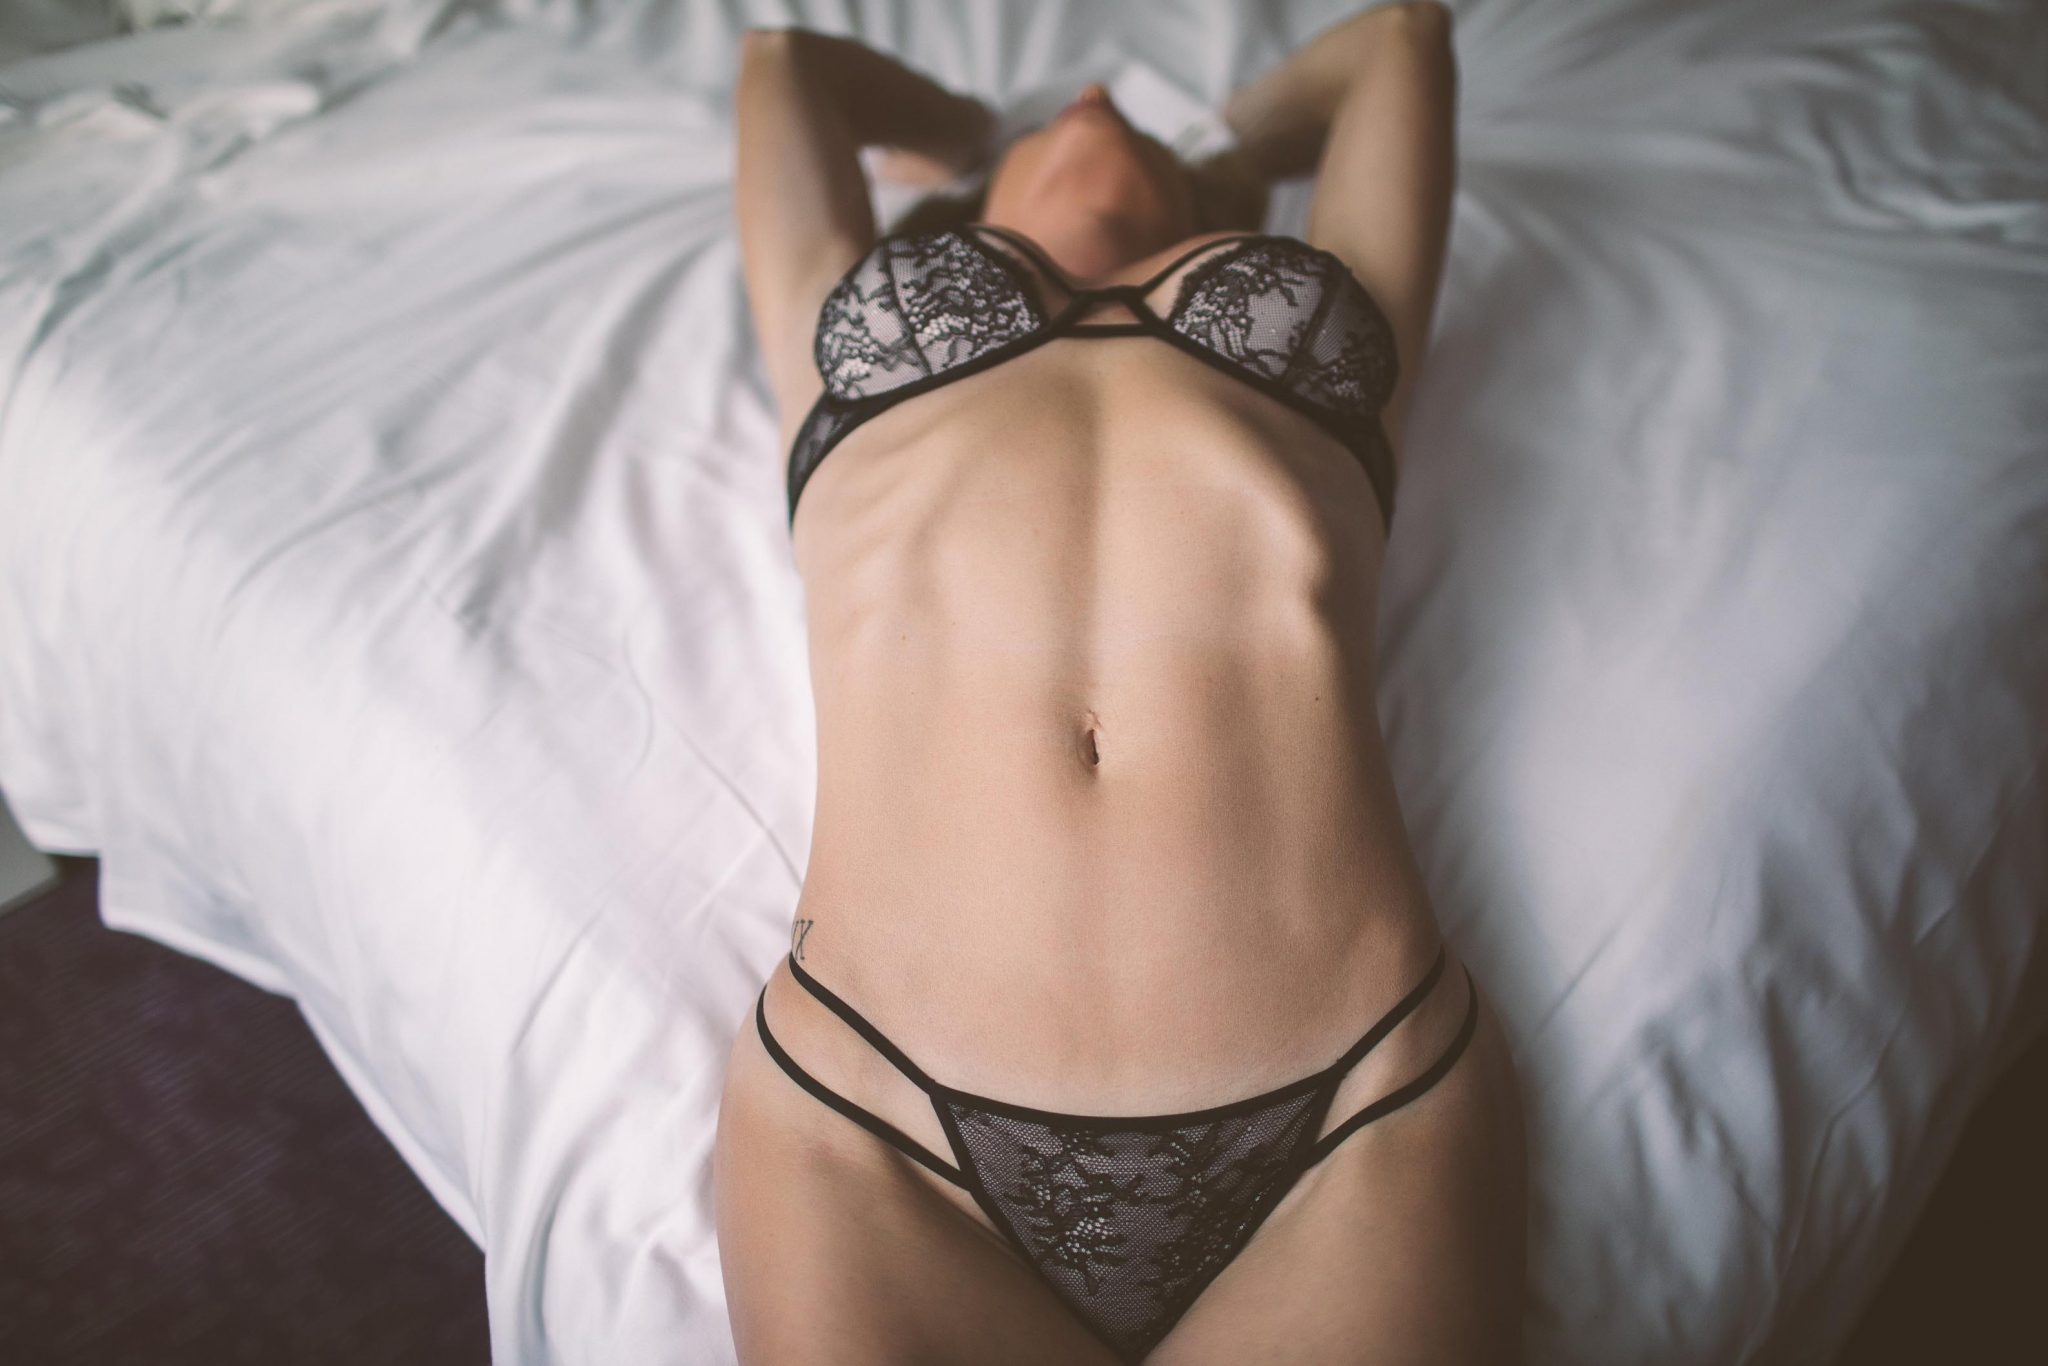 Model wearing lingerie at a boudoir shoot